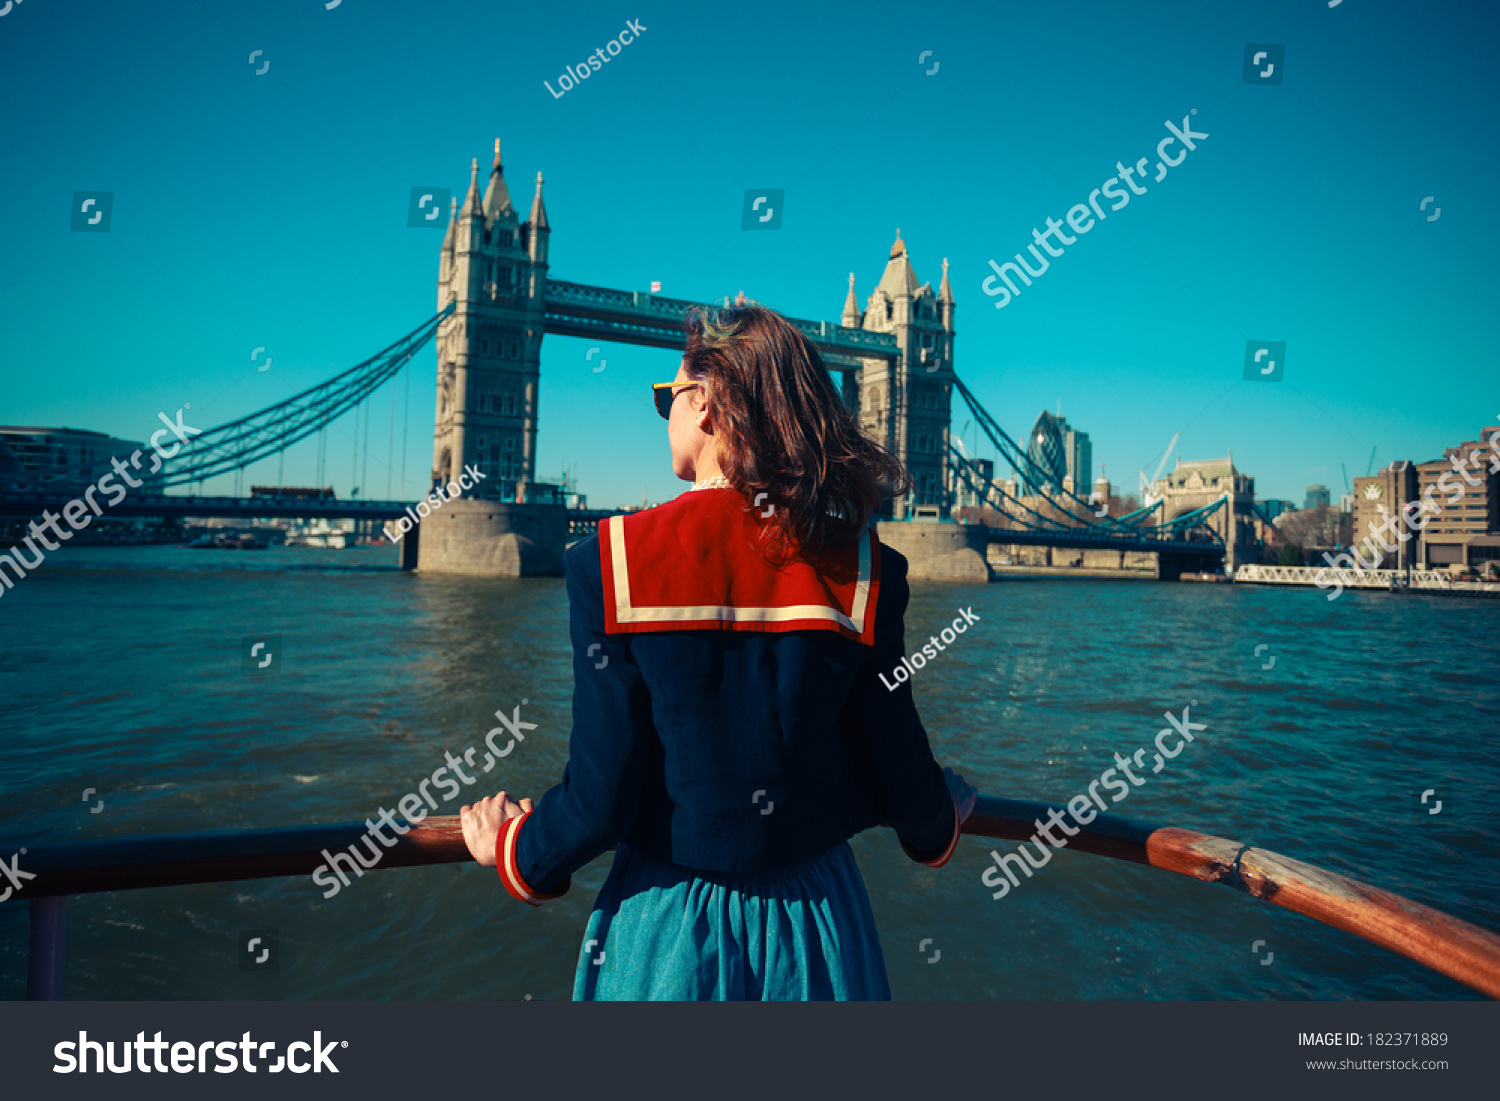 ... Bridge And The London Skyline Stock Photo 182371889 : Shutterstock: www.shutterstock.com/pic-182371889/stock-photo-a-young-woman-on-a...